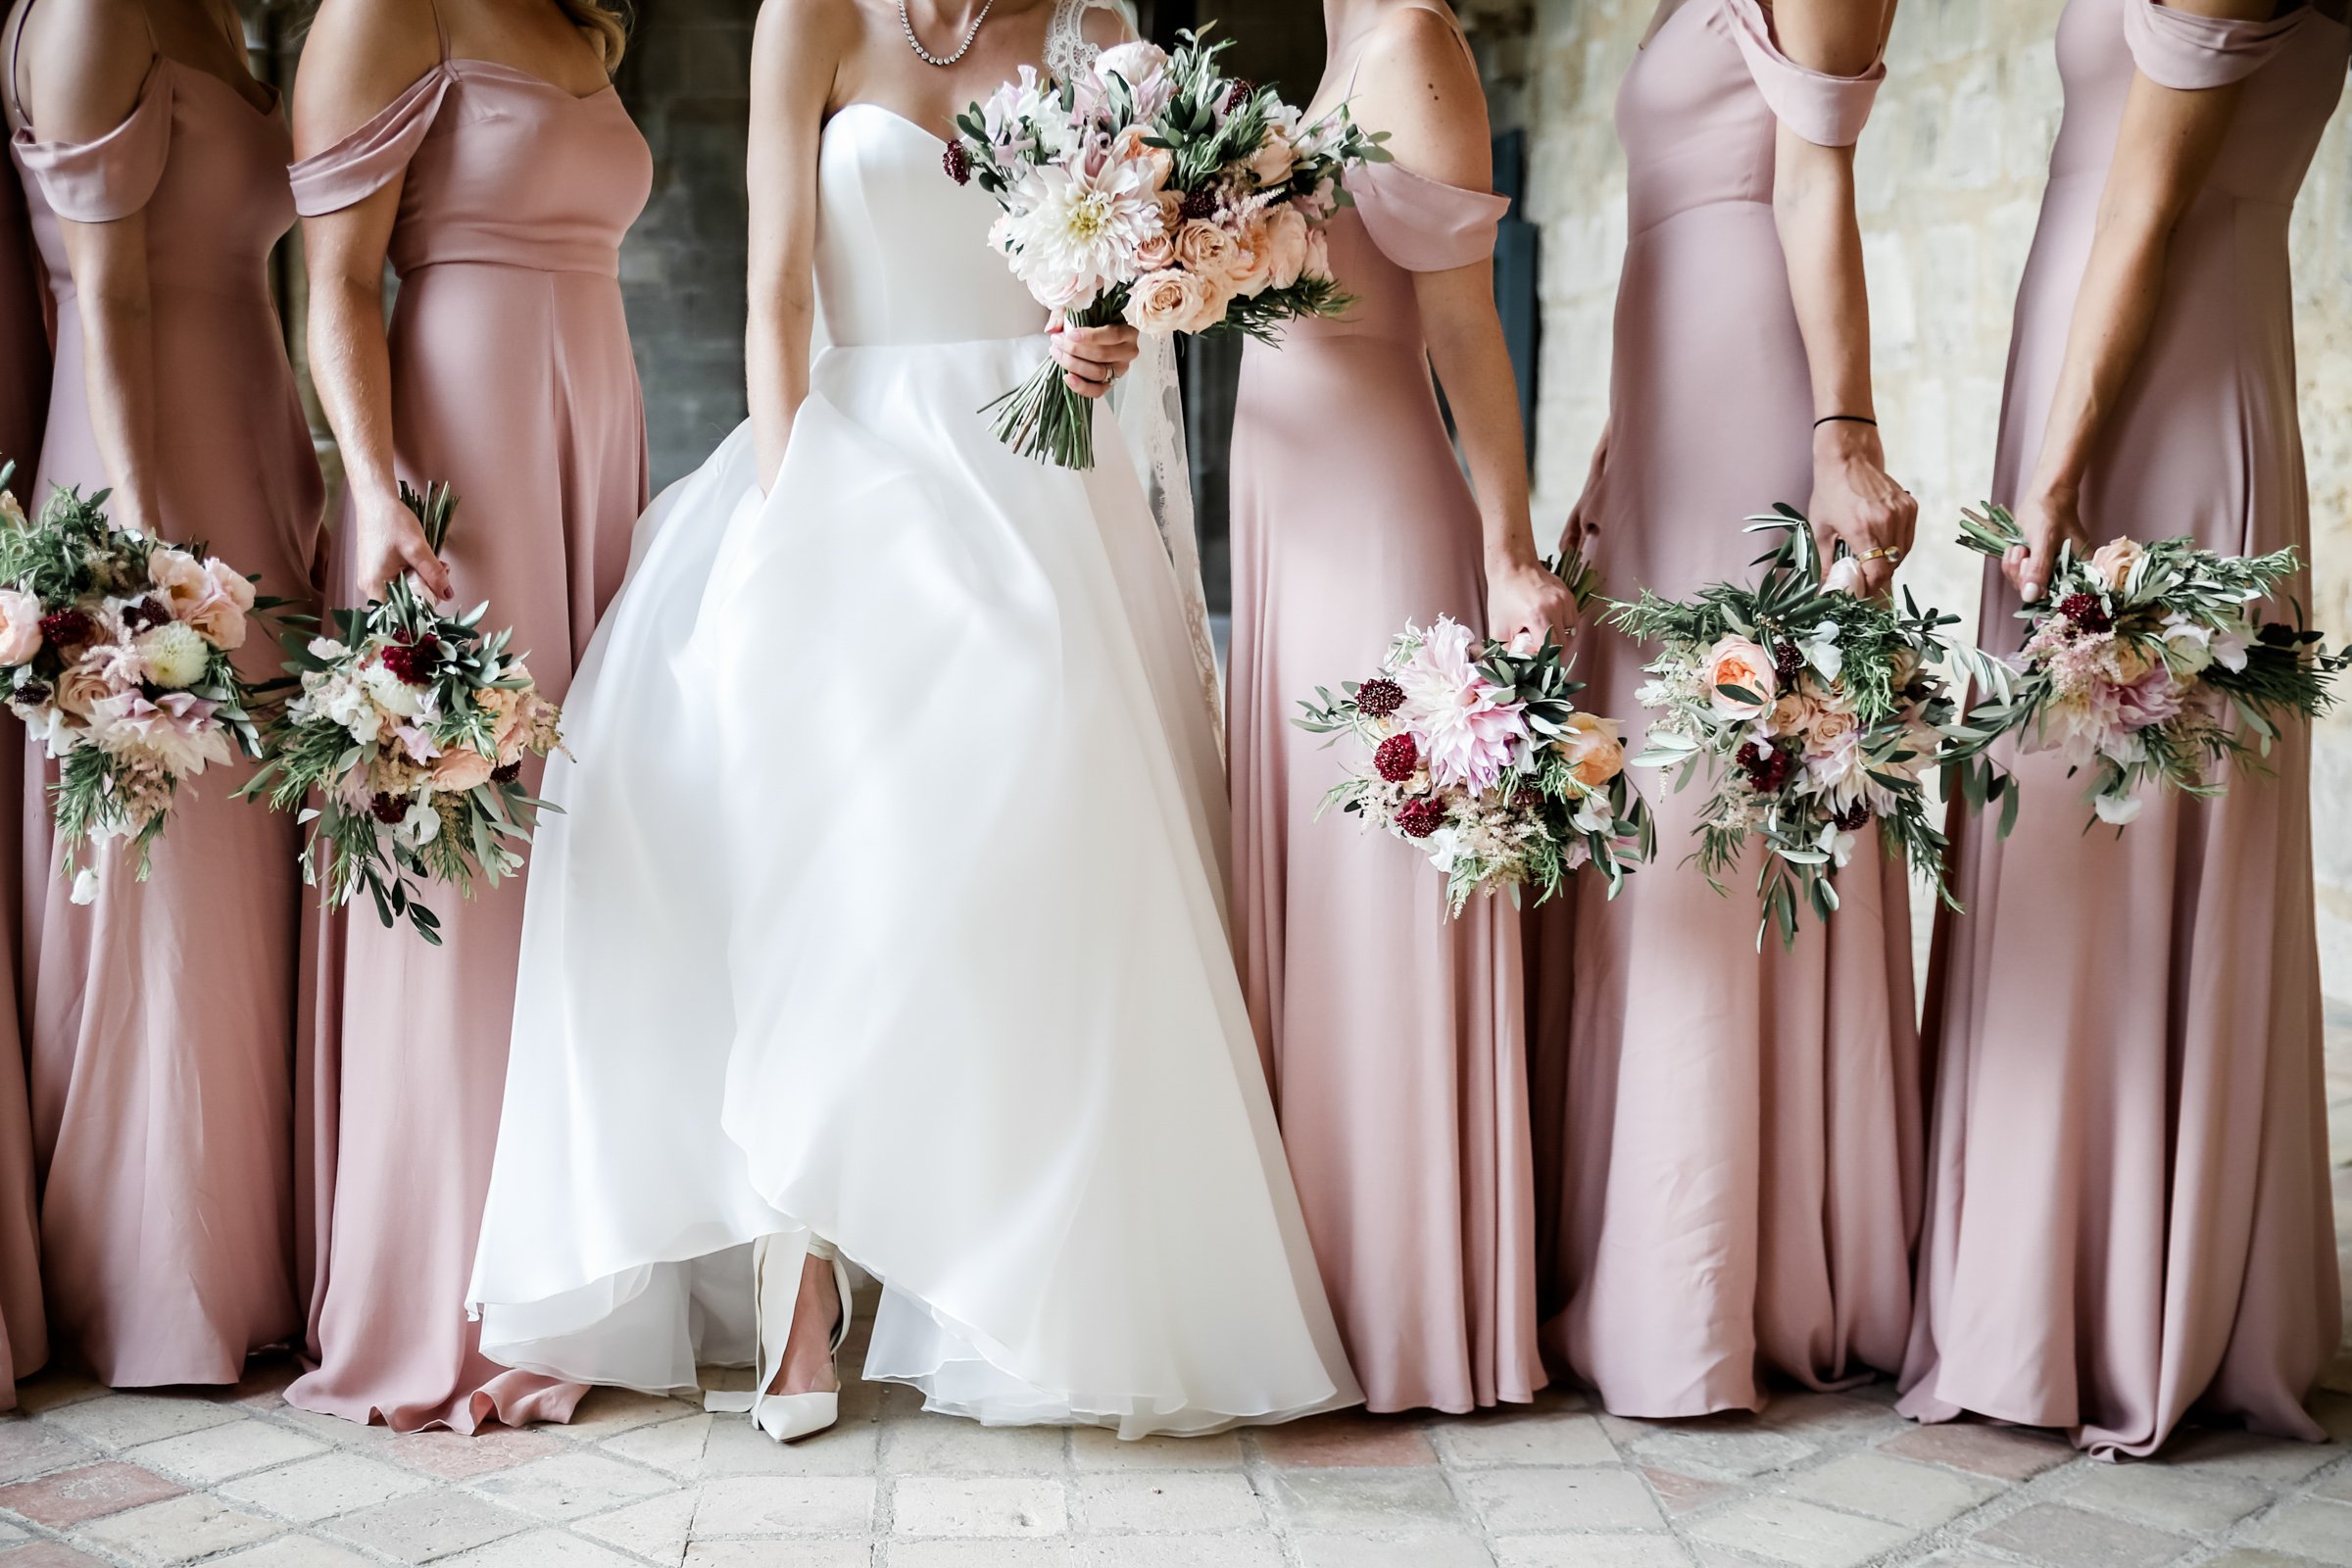 Pink crepe drop-shoulder bridesmaids dresses and bouquets - photo by Julien Laurent Georges